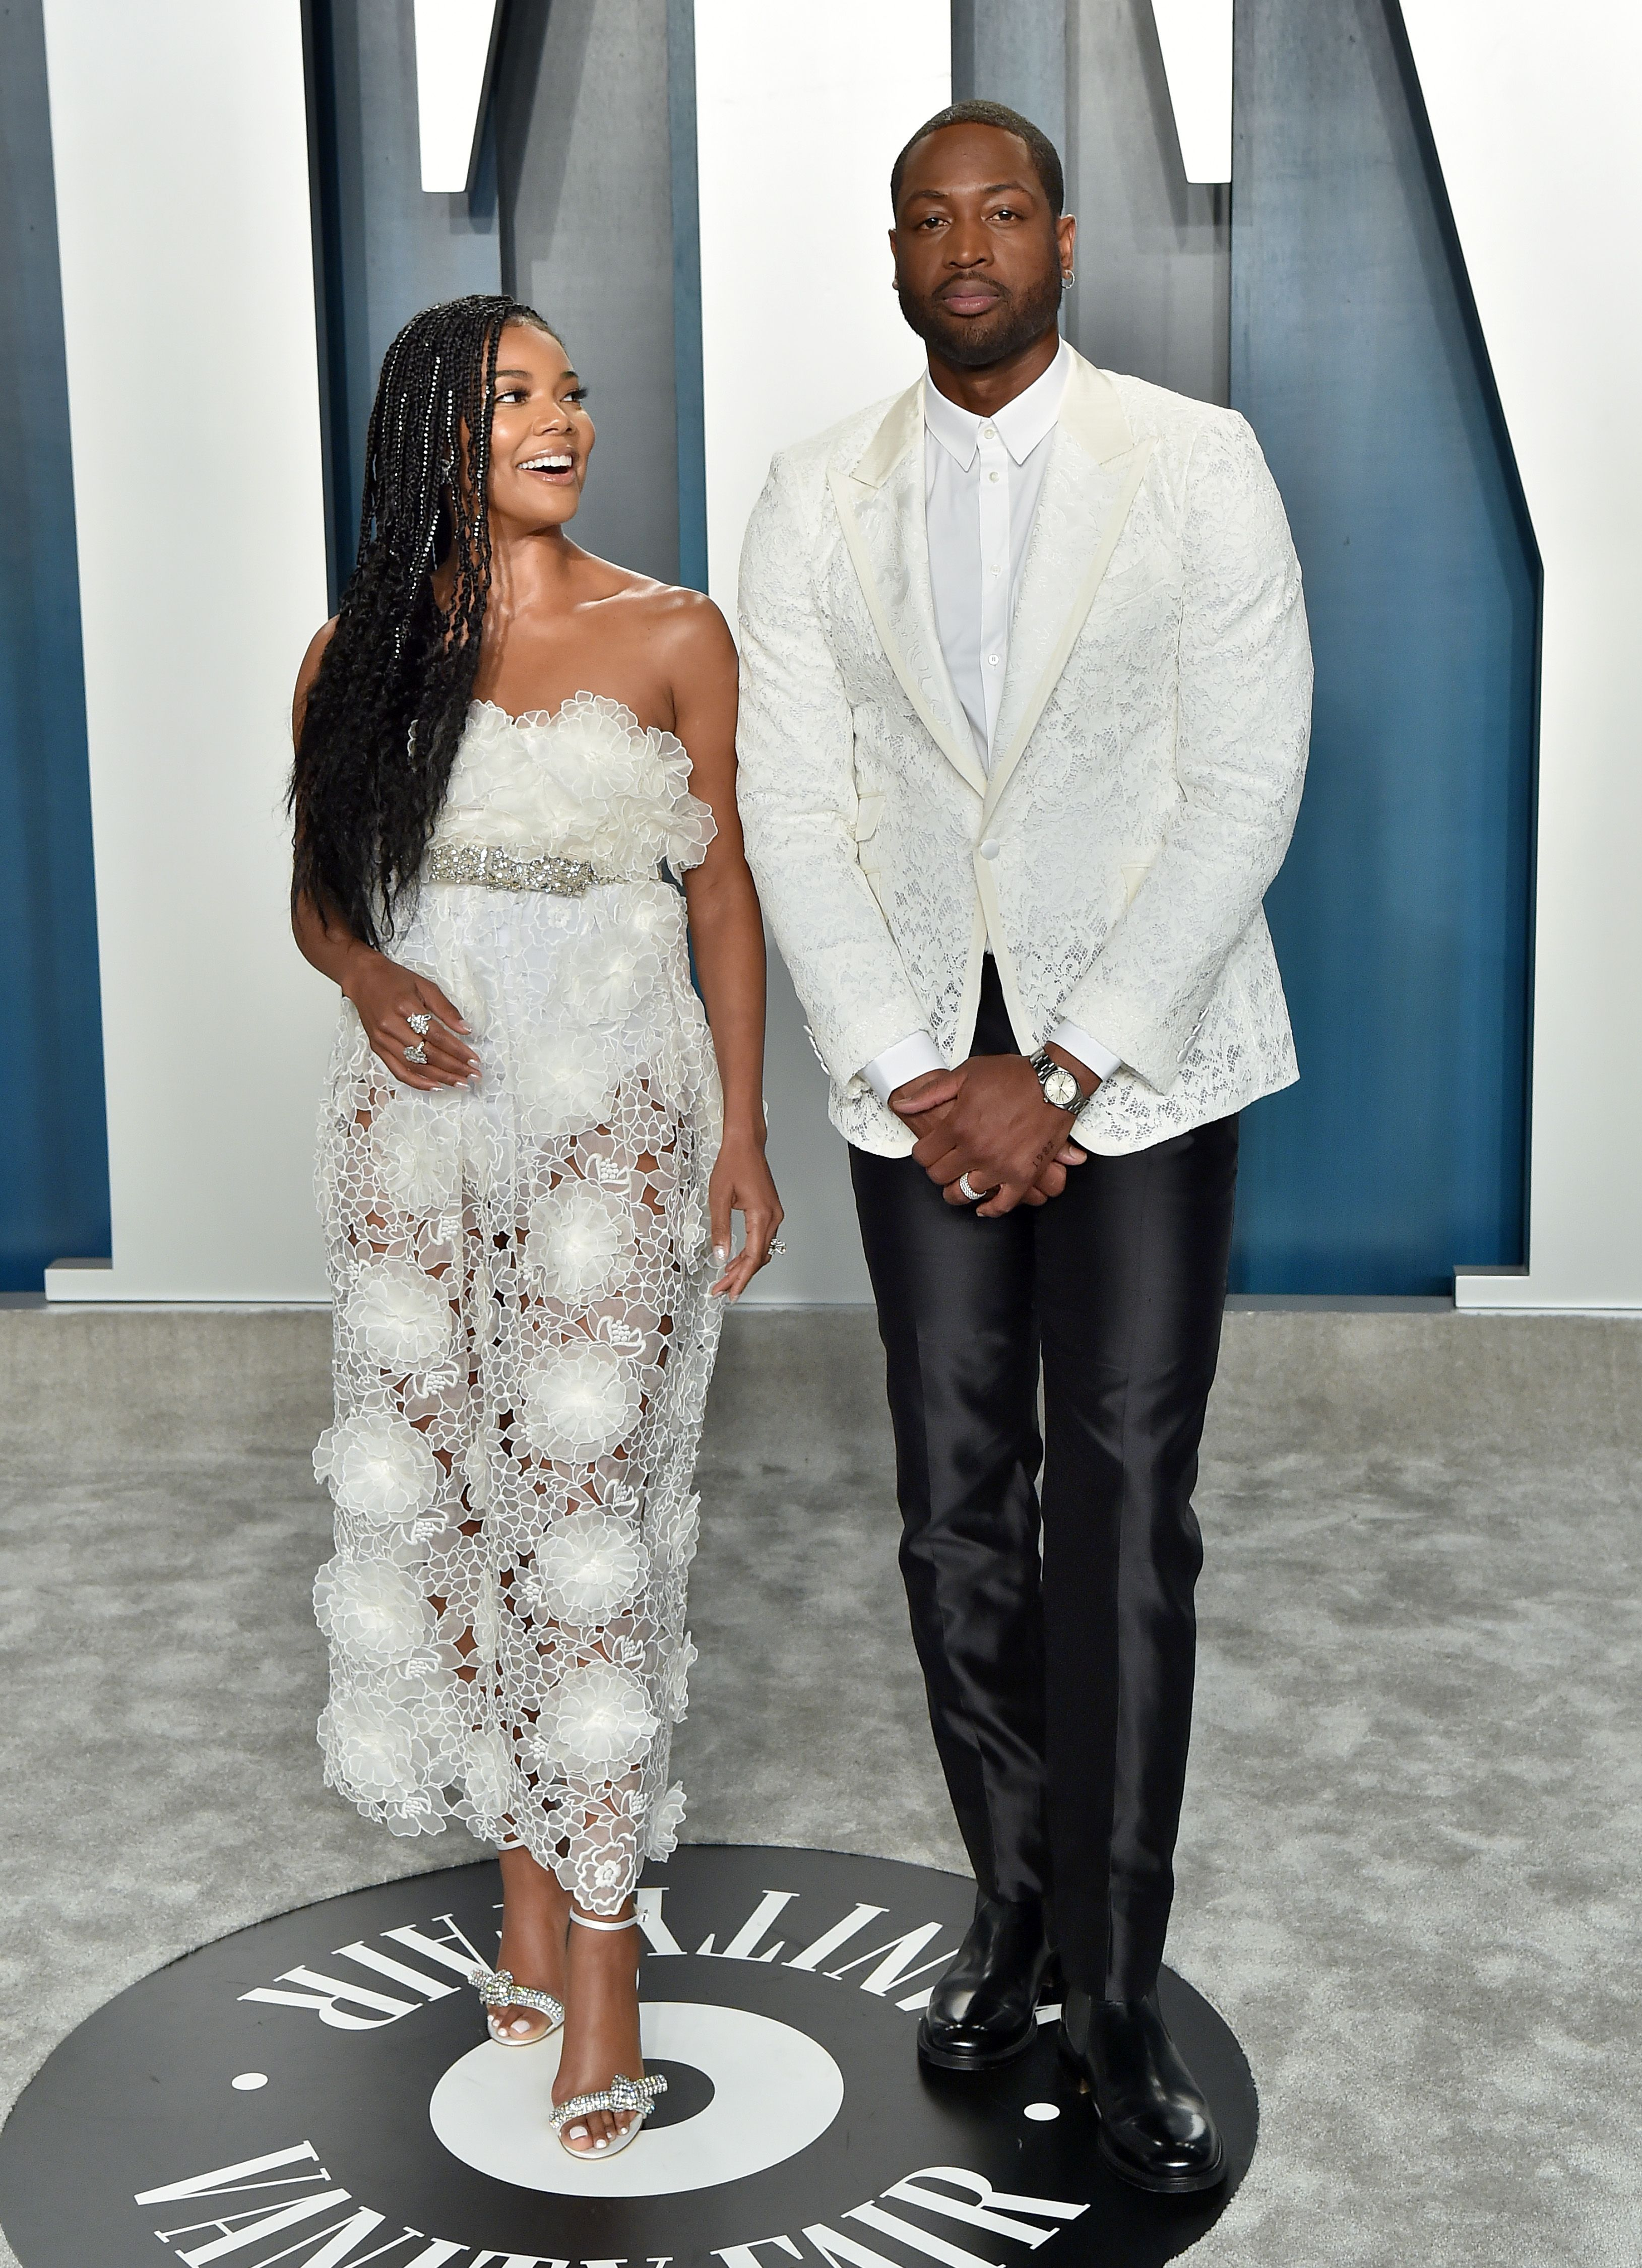 Gabrielle Union and Dwyane Wade during the 2020 Vanity Fair Oscar Party hosted by Radhika Jones at Wallis Annenberg Center for the Performing Arts on February 09, 2020 in Beverly Hills, California.   Source: Getty Images